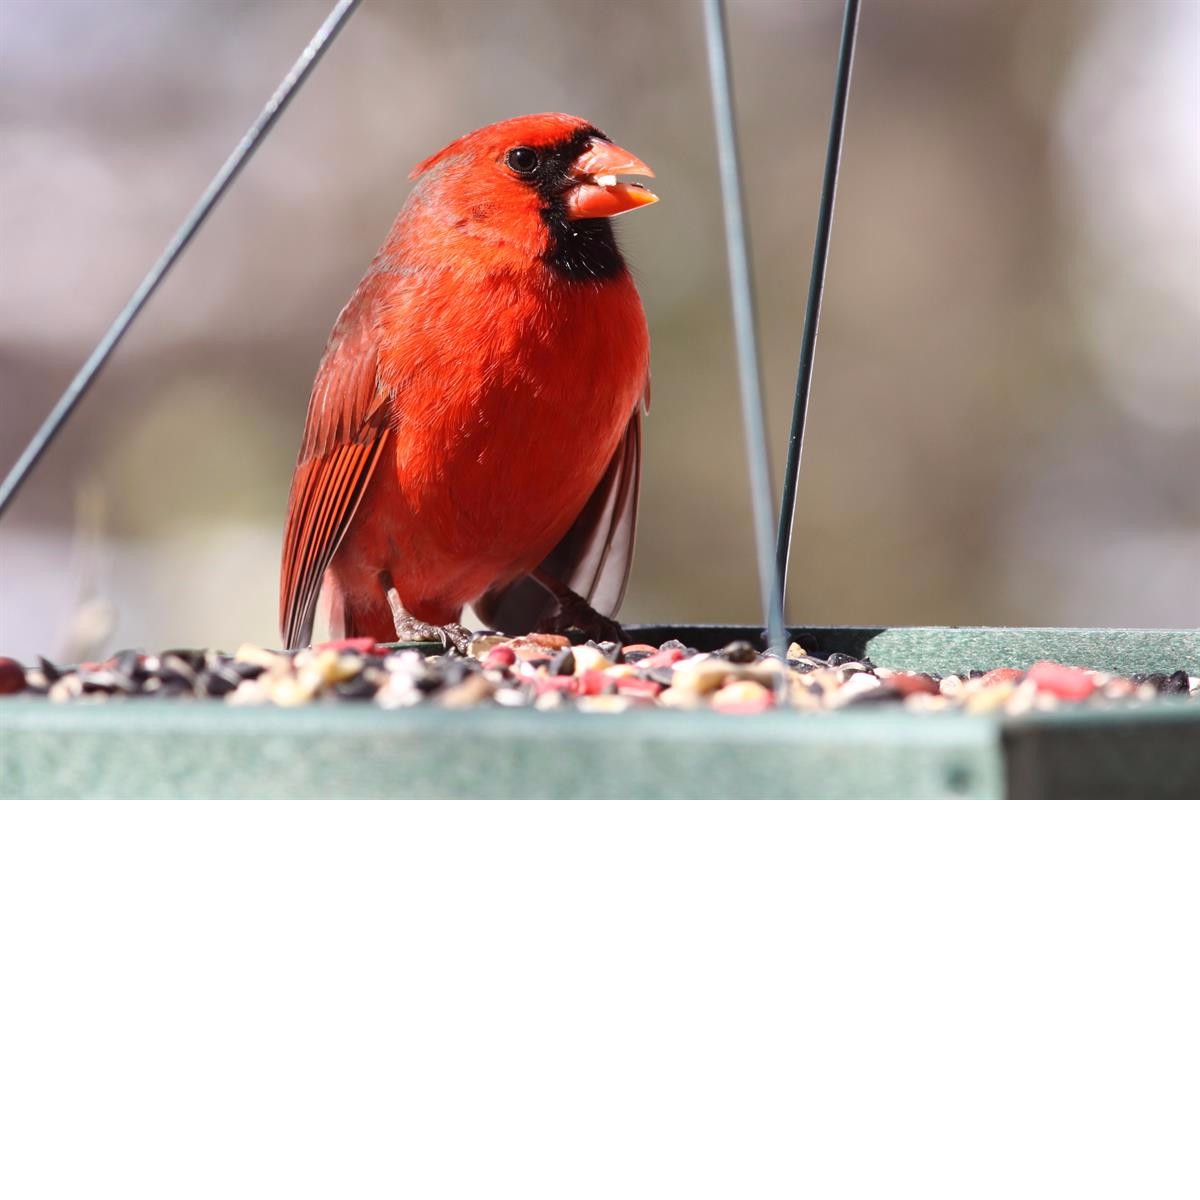 bird food, bird seed, platform feeder, tray feeder, cardinal food